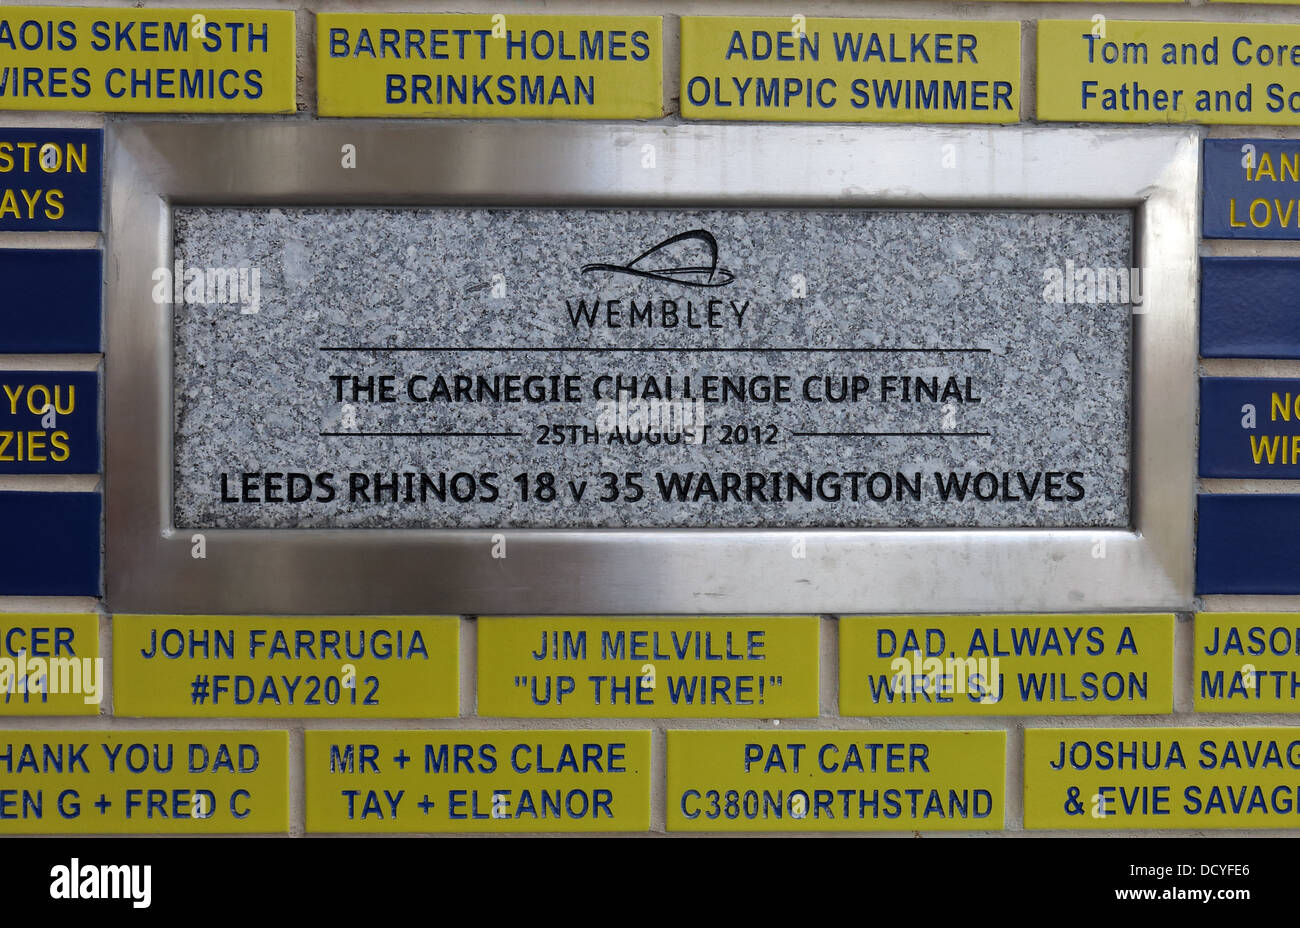 Carnegie Challenge Cup Final plaque at Halliwell Jones stadium, Mike Gregory Way / Winwick Rd, Warrington, WA2 7NE - Stock Image